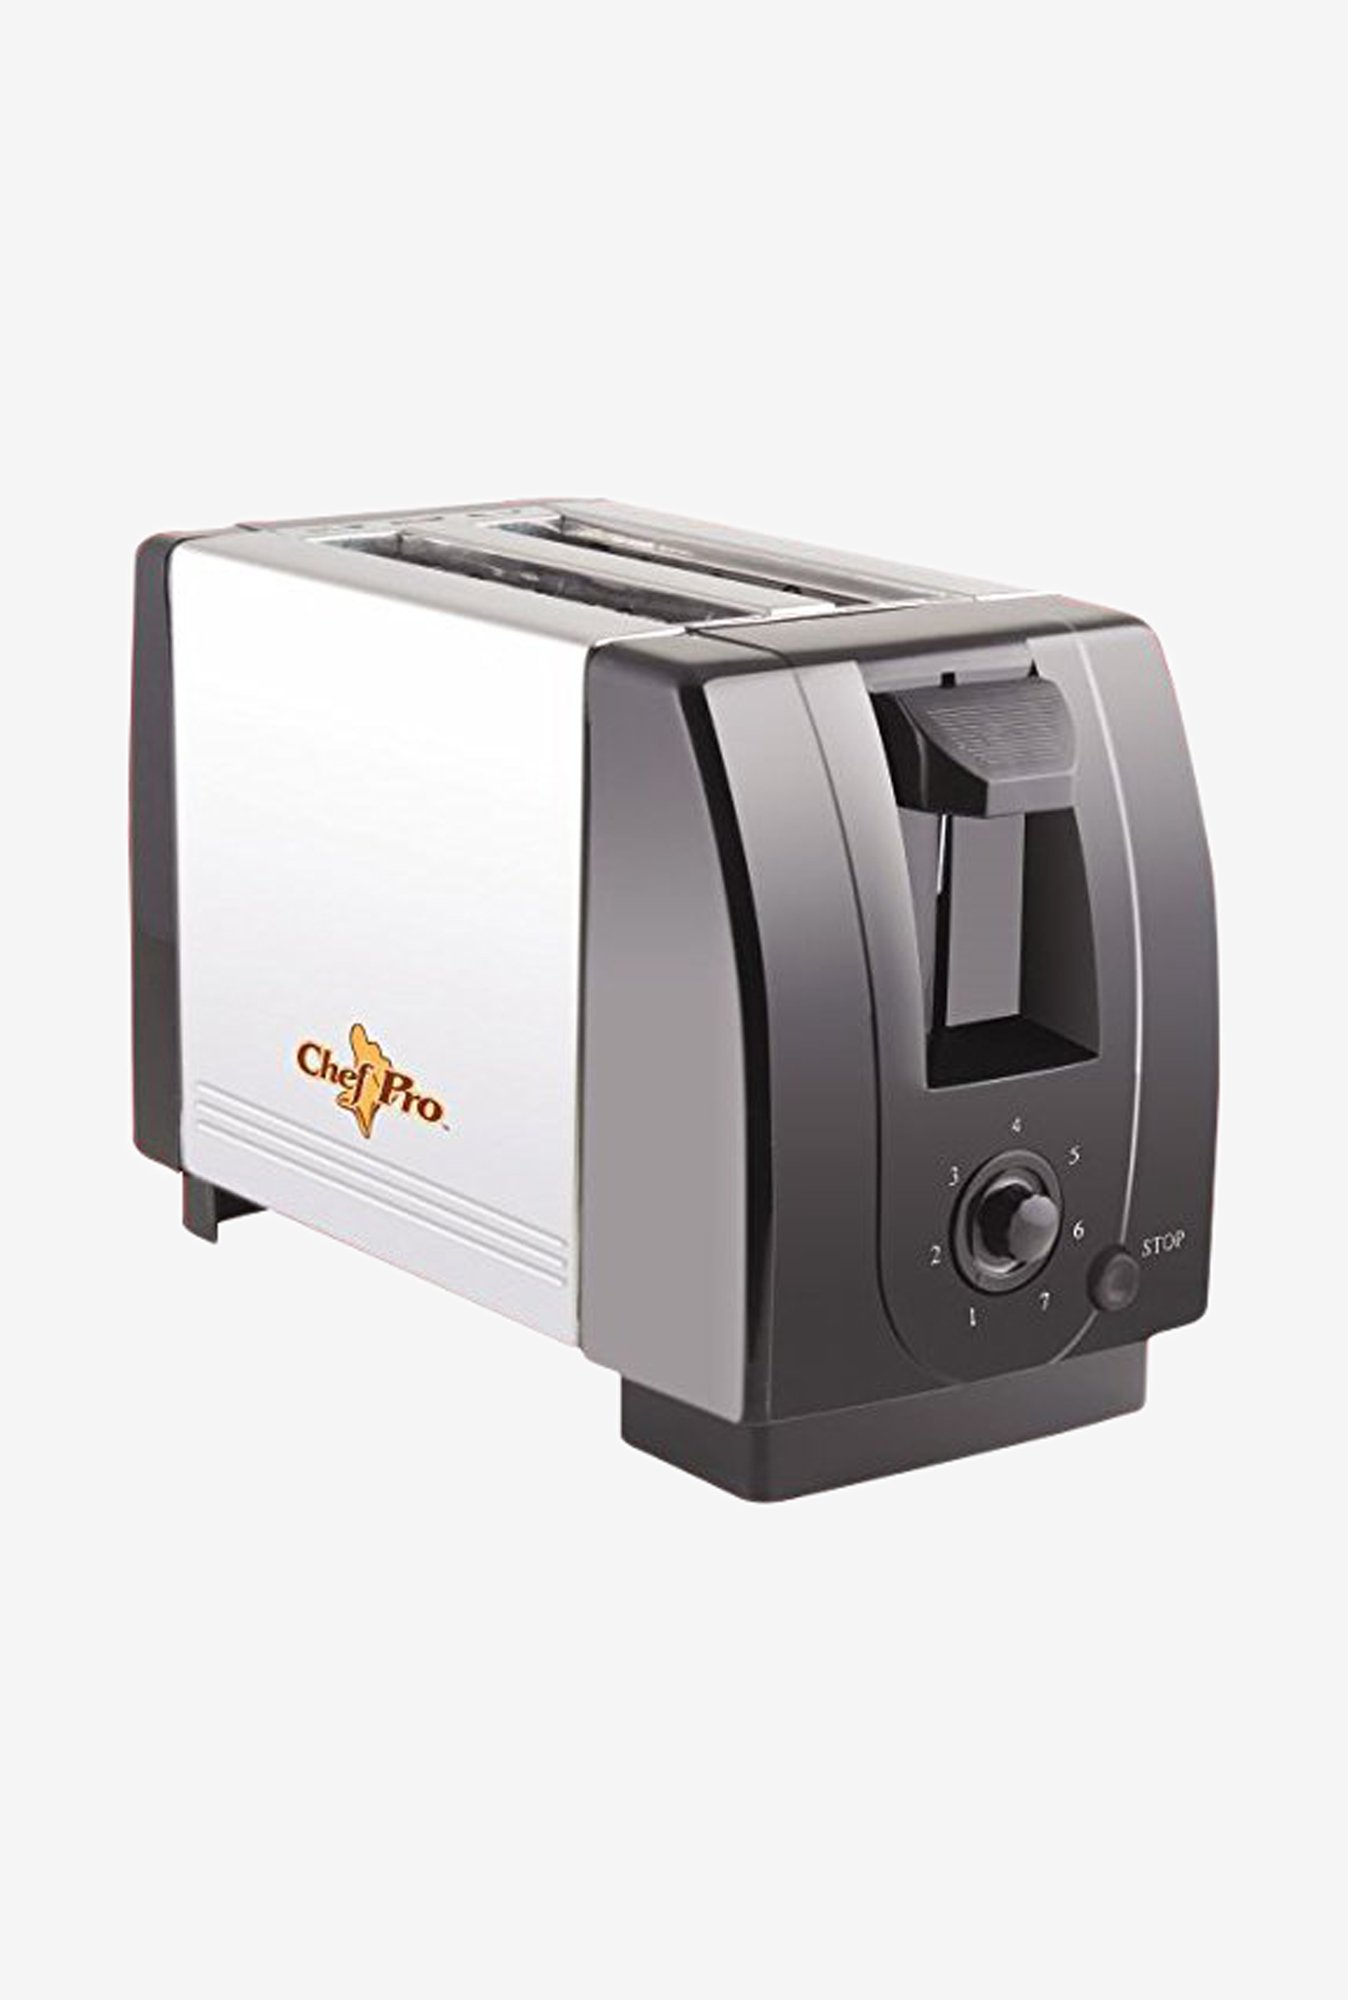 Chef Pro CPT541 2 Slice Pop-Up Toaster (Black)